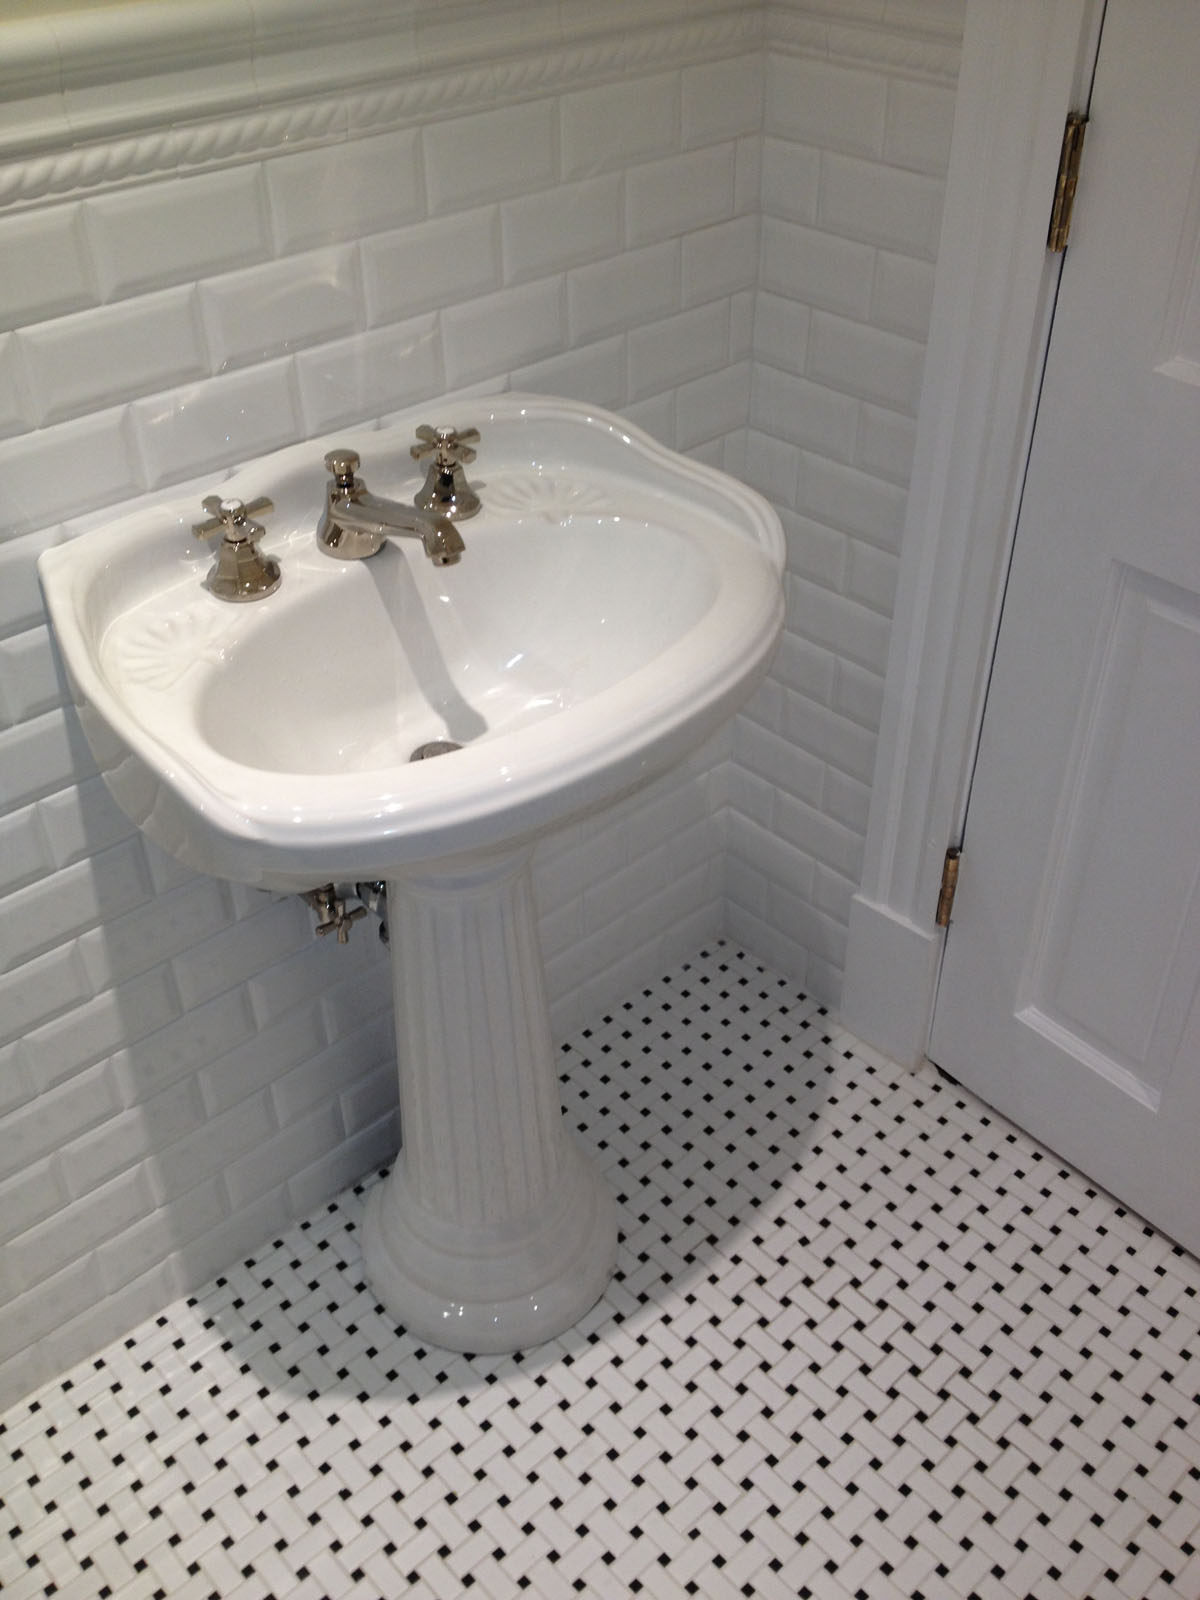 Beacon St. Boston after bathroom remodel showing new pedestal sink